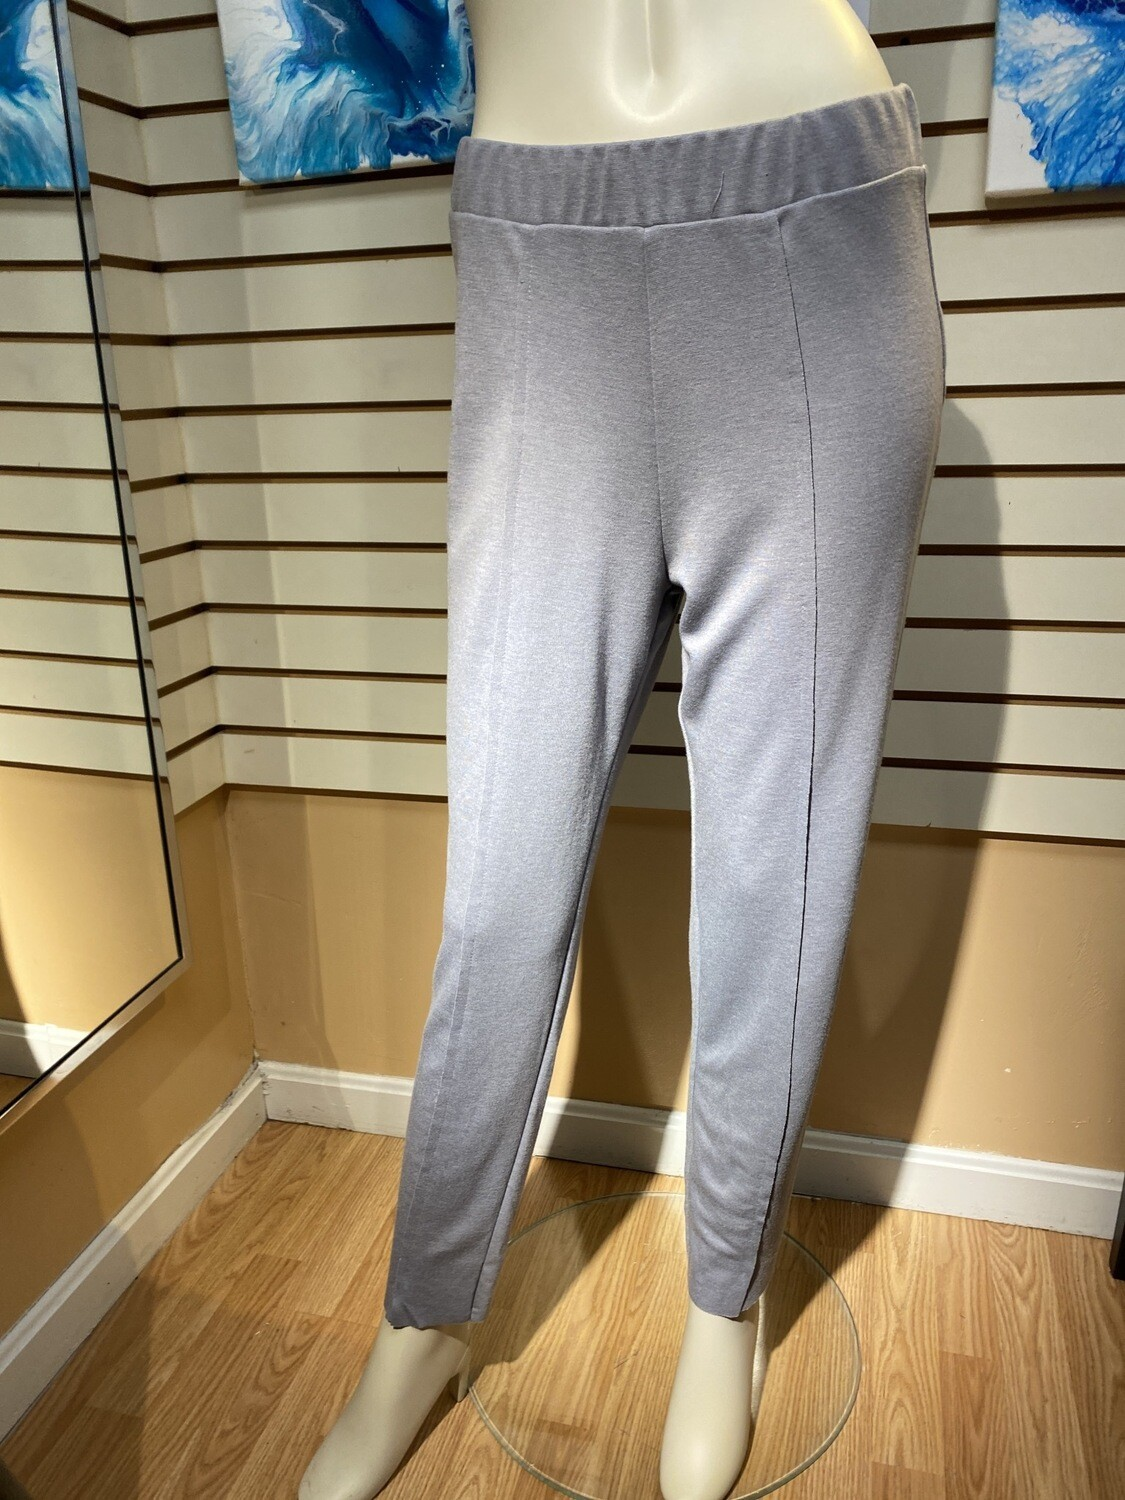 Major Deal Luukaa Knit Front Seem Pant. Gray. Only 1 Size 3, / Like 6,8